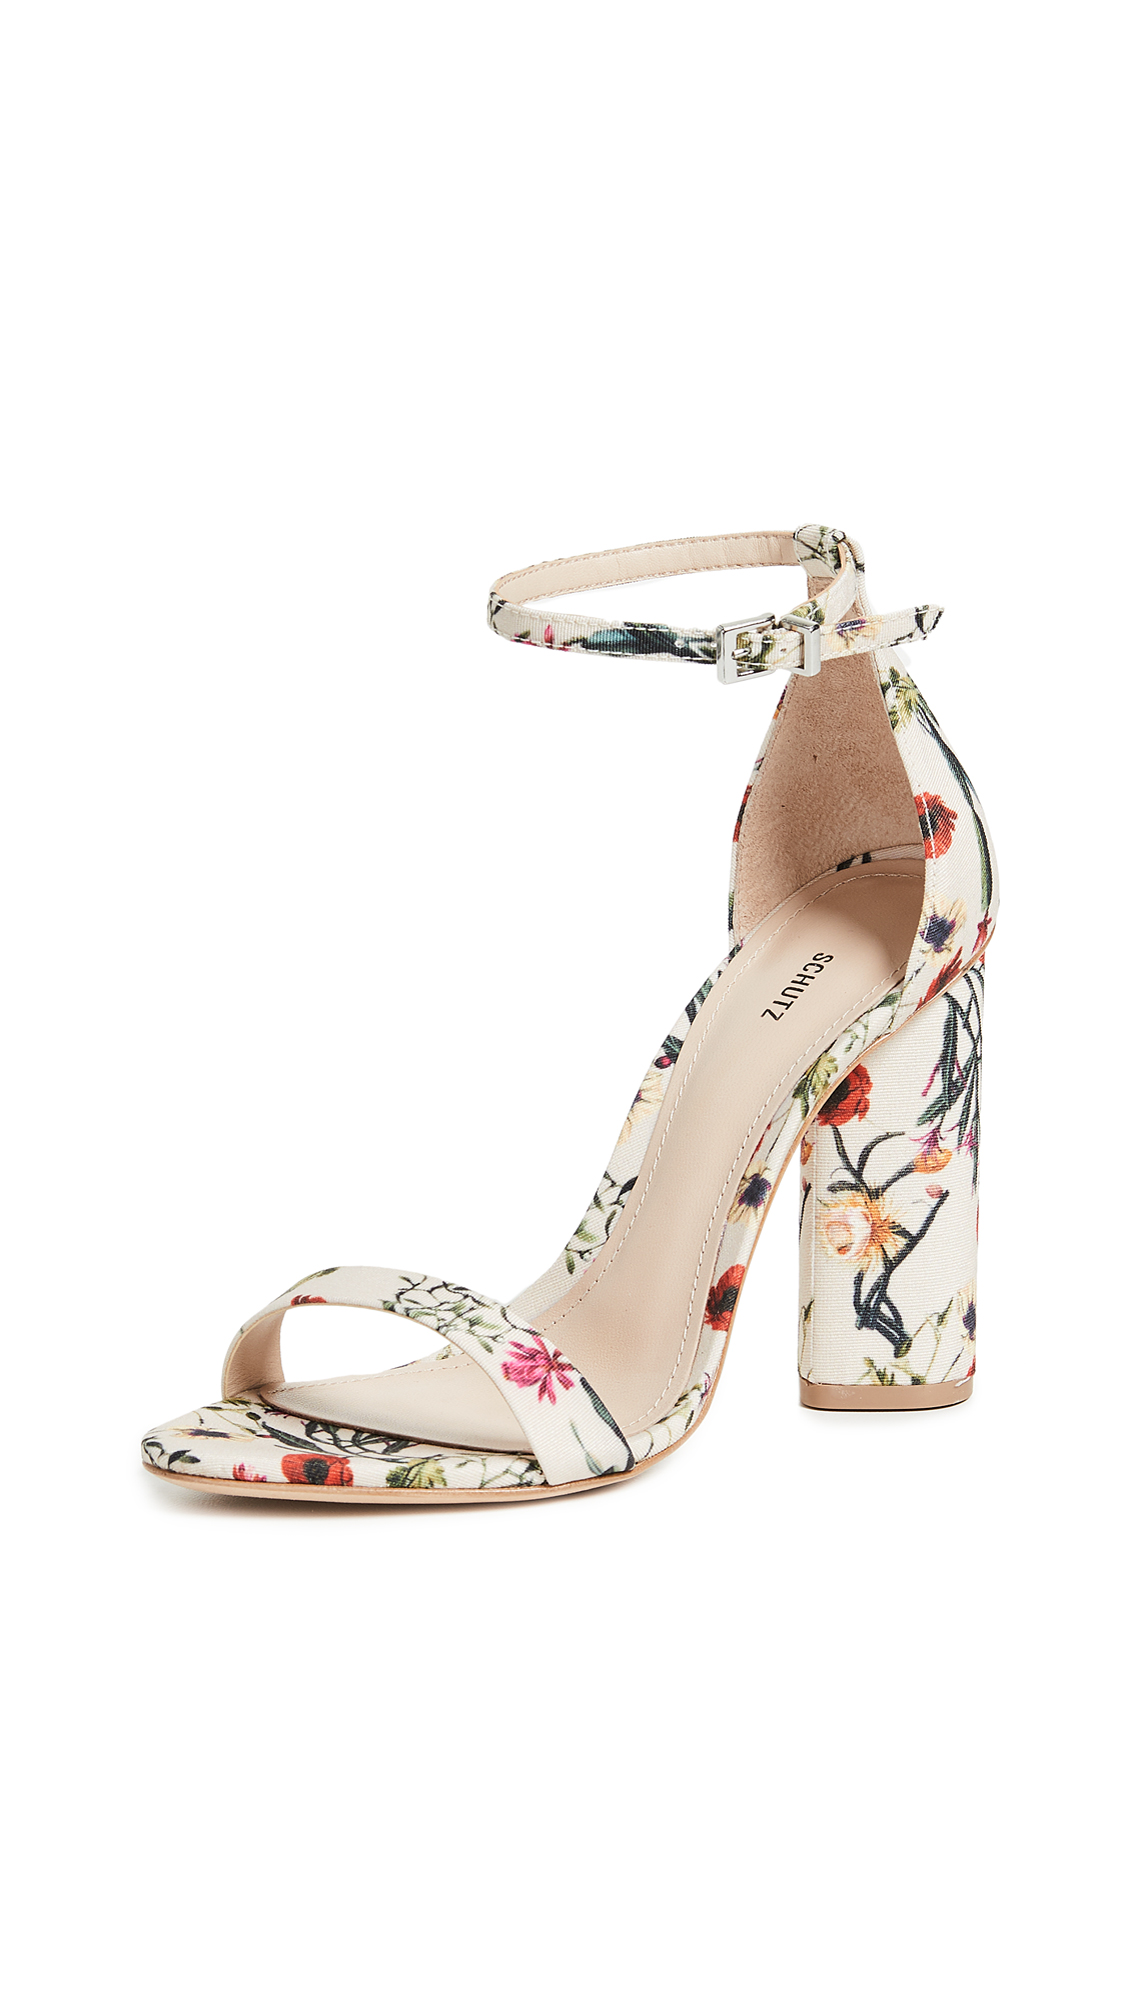 Schutz Jeannine Block Heel Sandals - Multi